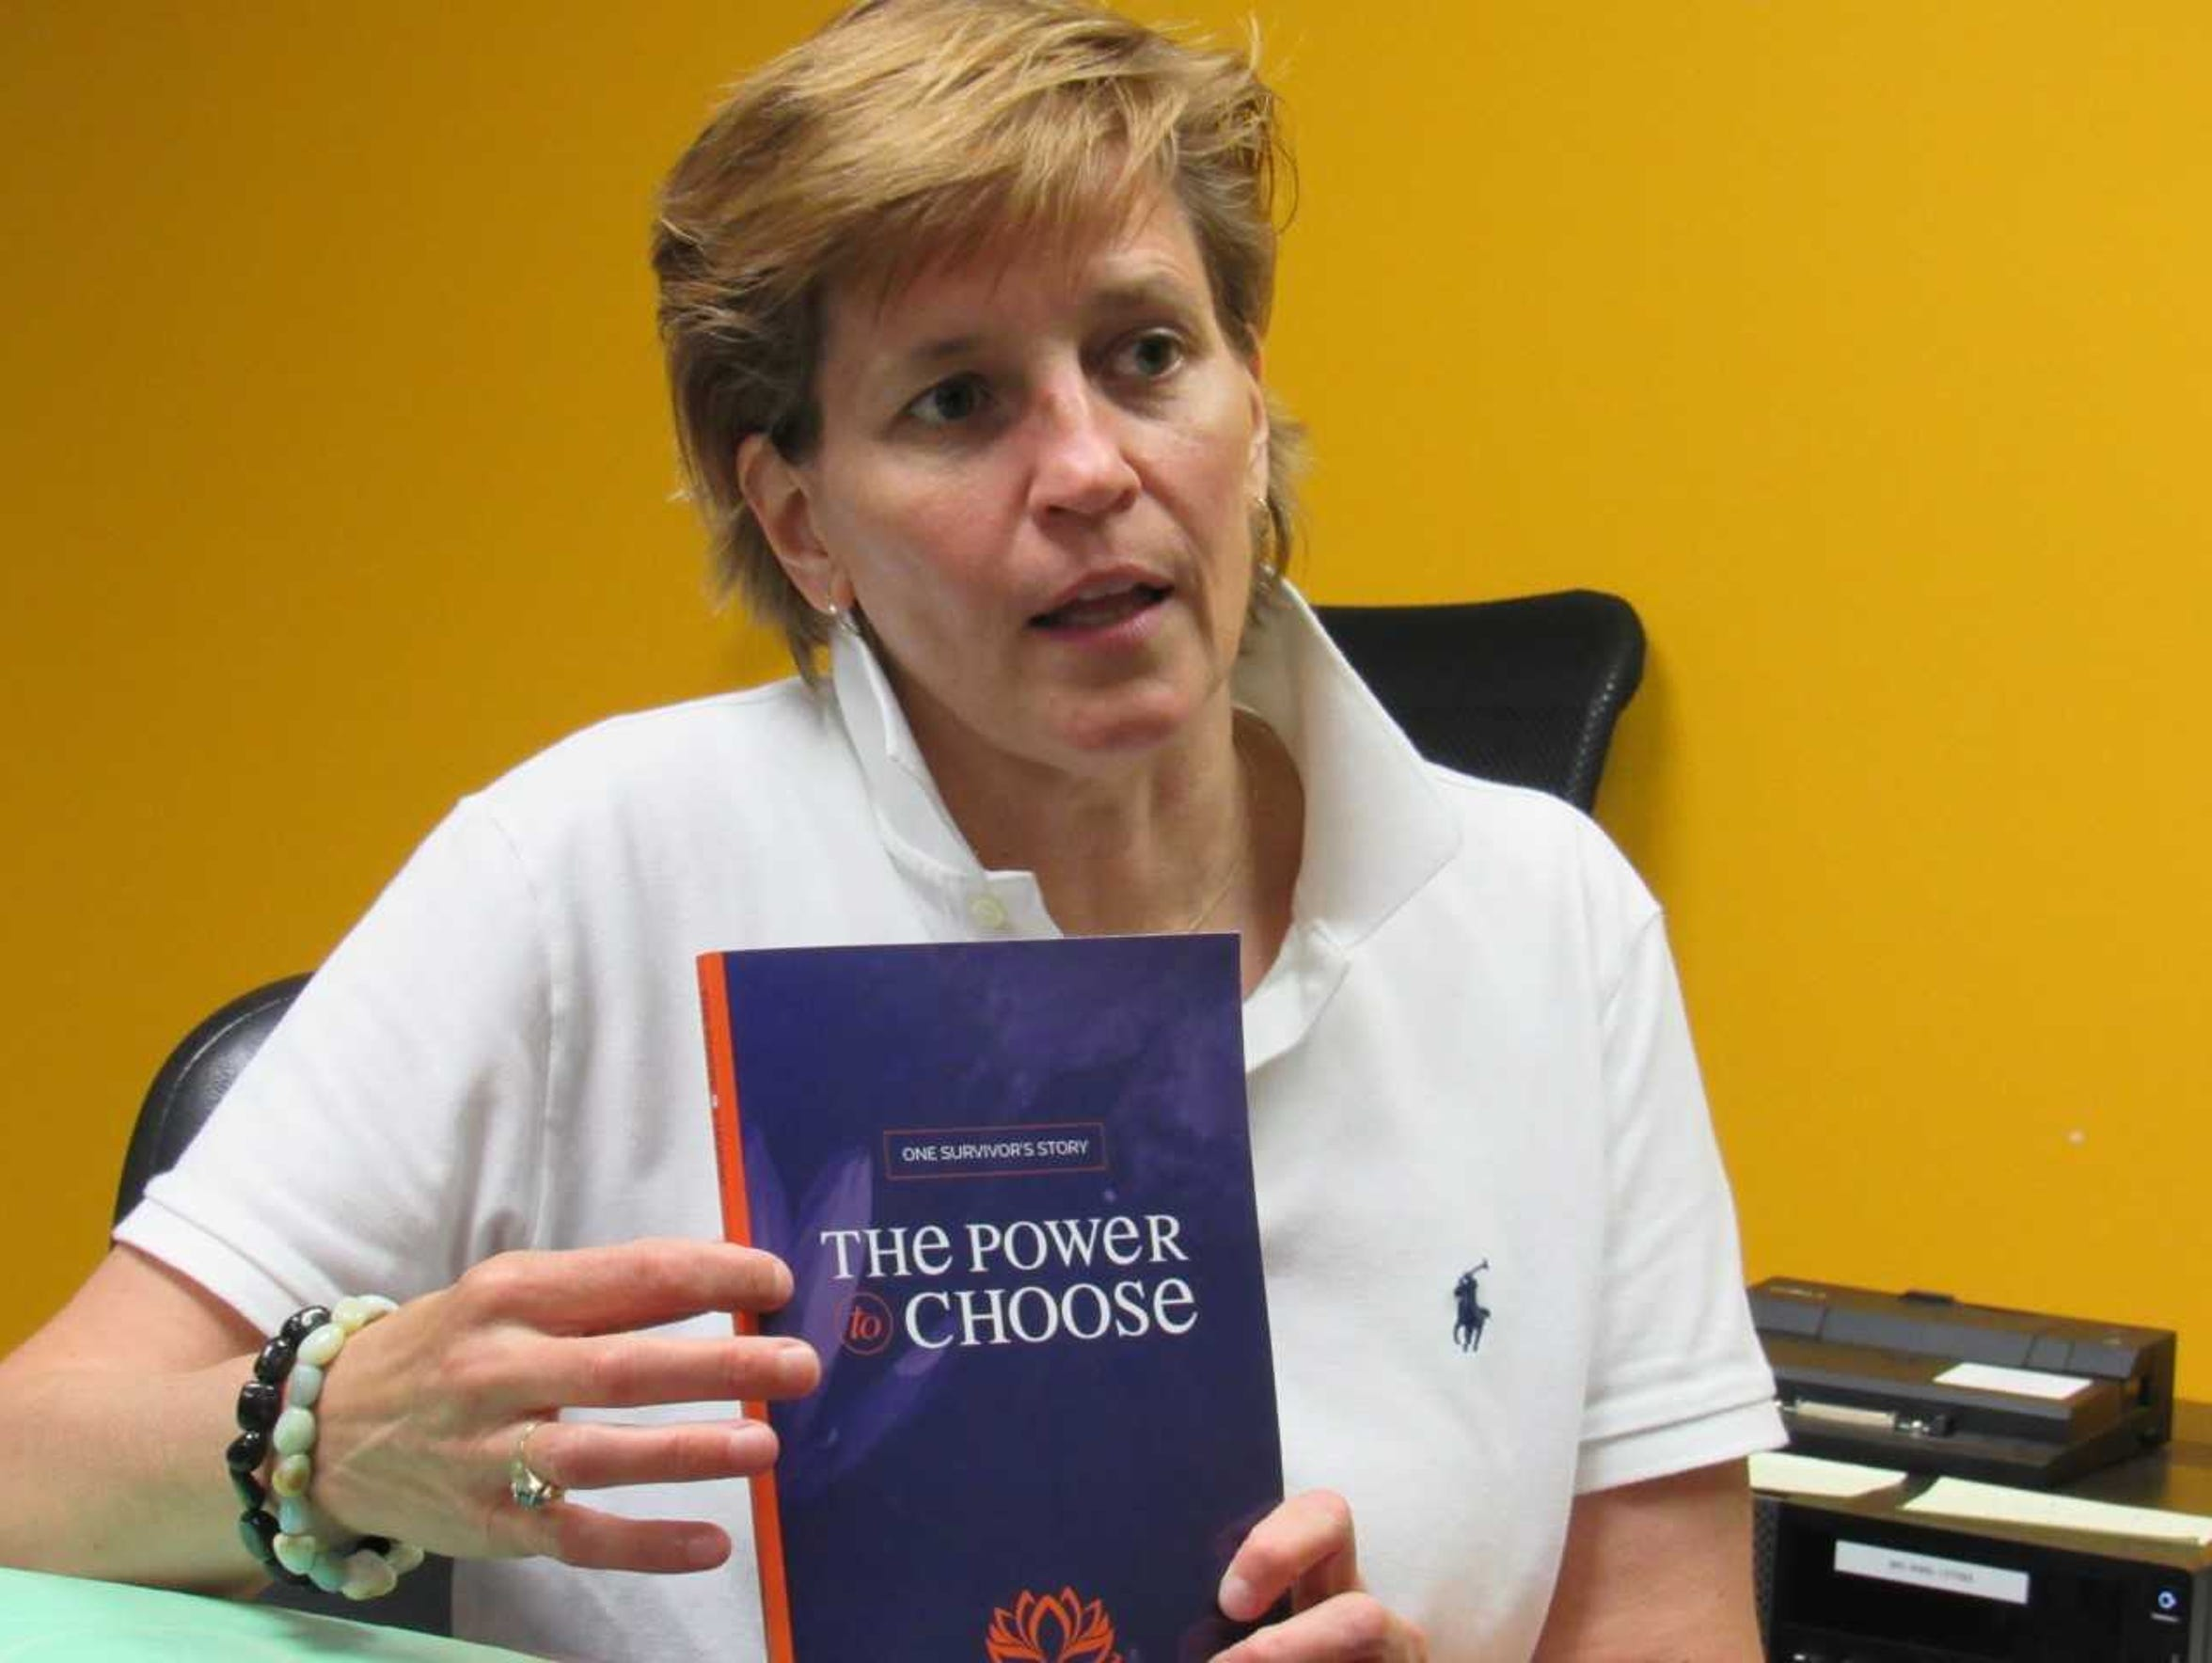 Susan Bisaha posing with her book, which details her